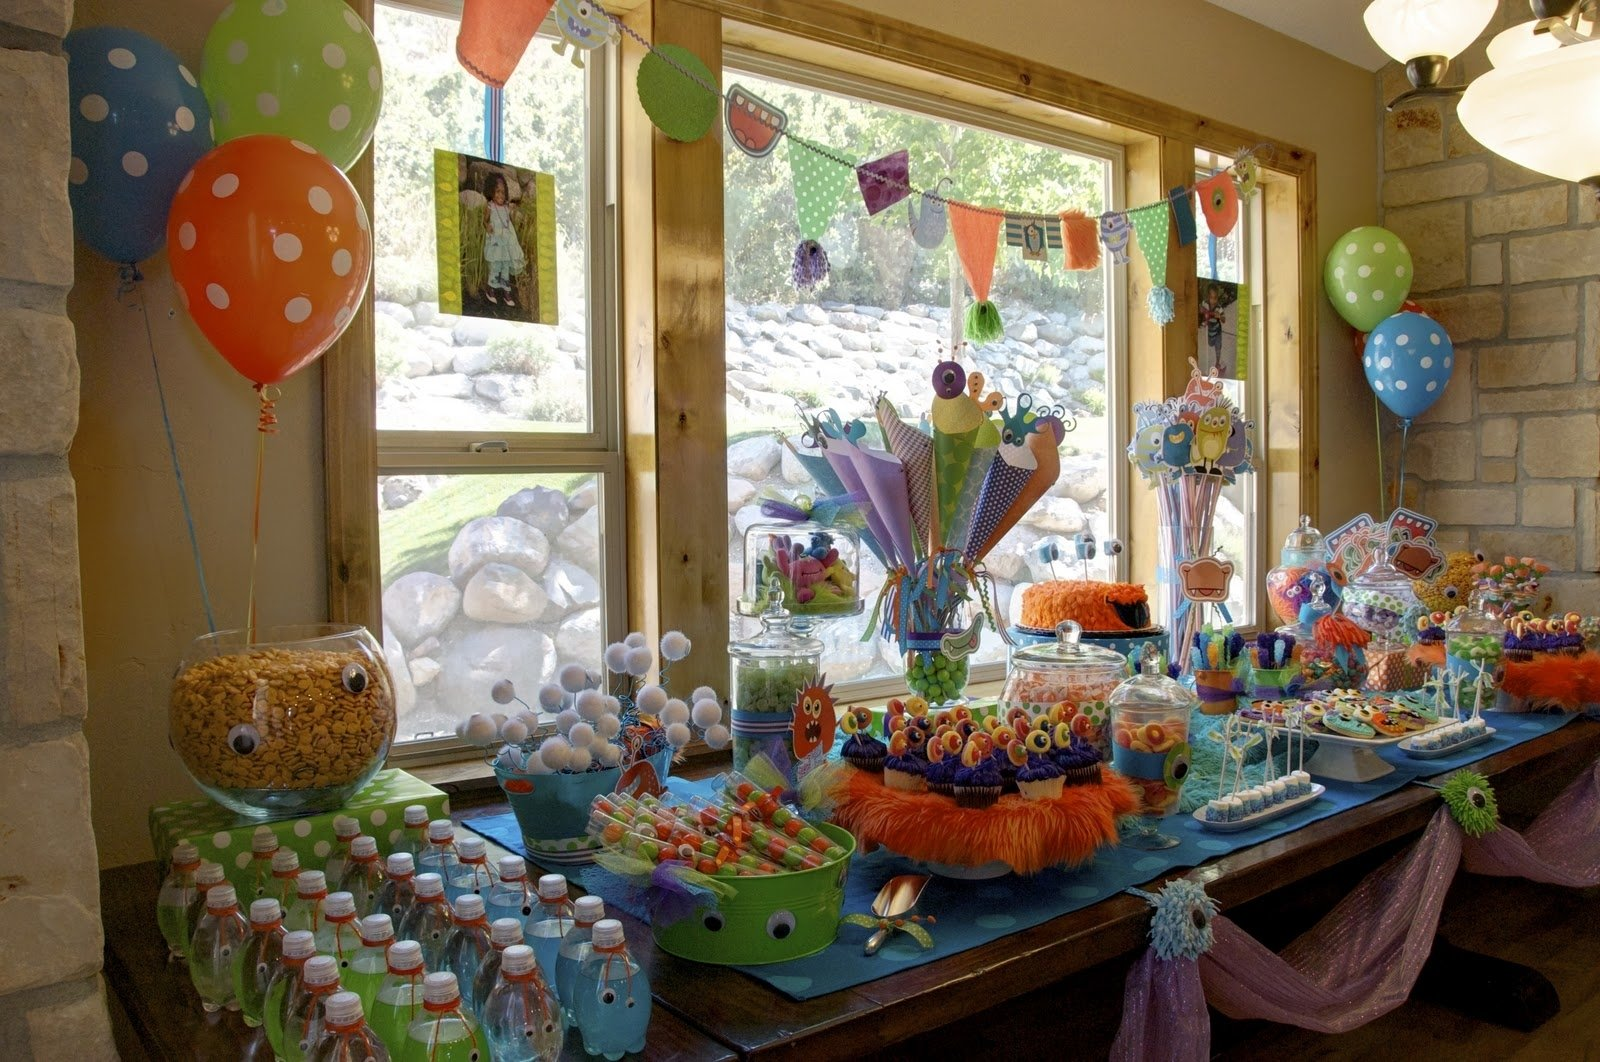 10 Famous Birthday Party Ideas For 13 Year Old Boys my friends birthday is in the winter and she wanteaes cause shes 15